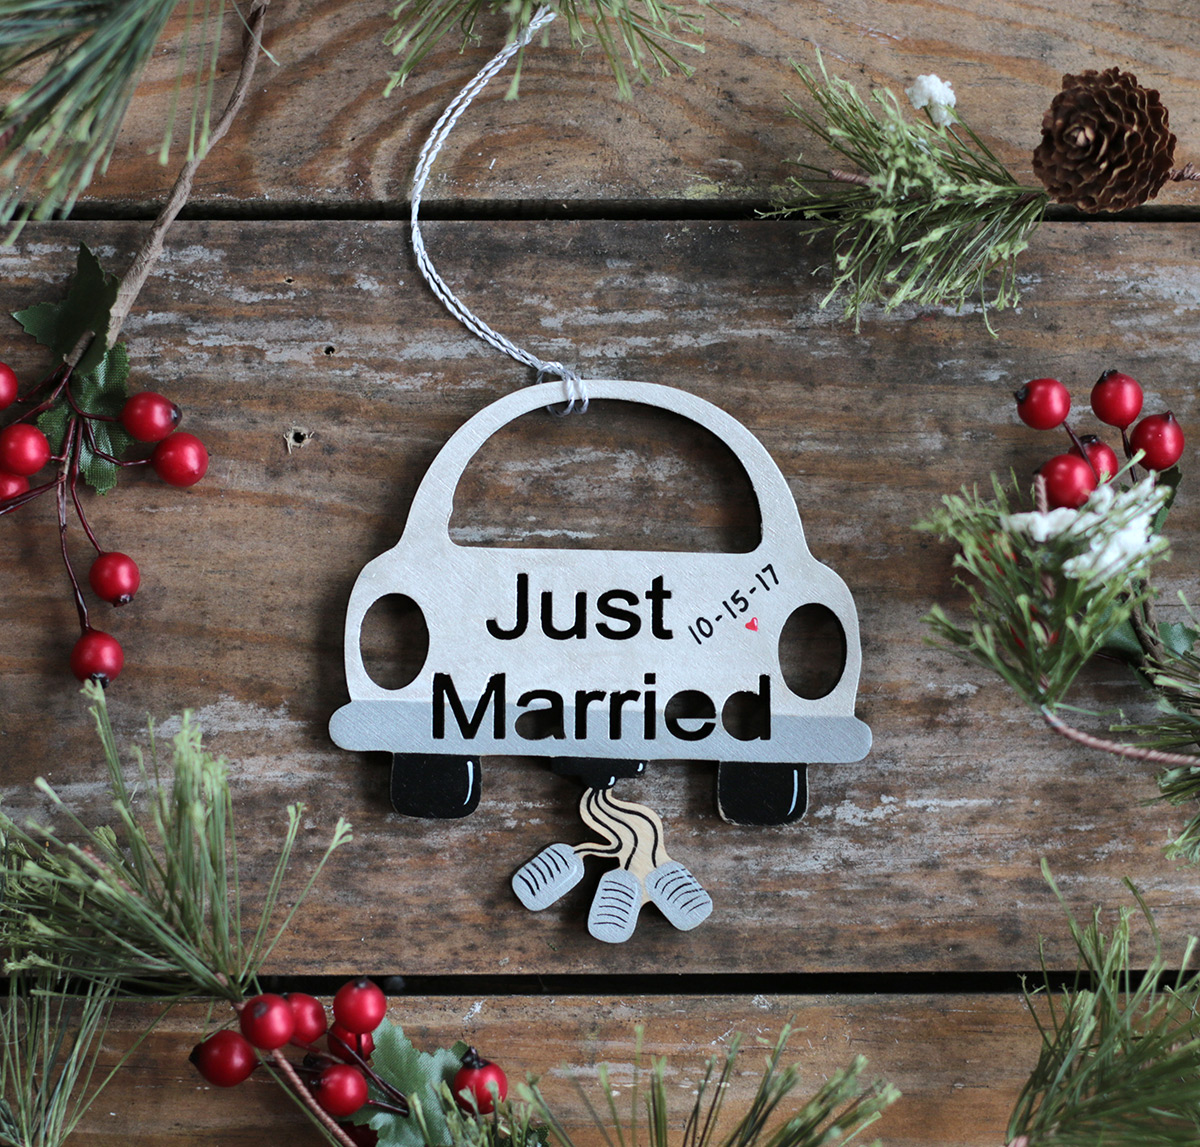 Just Married Car Ornament - The Weed Patch